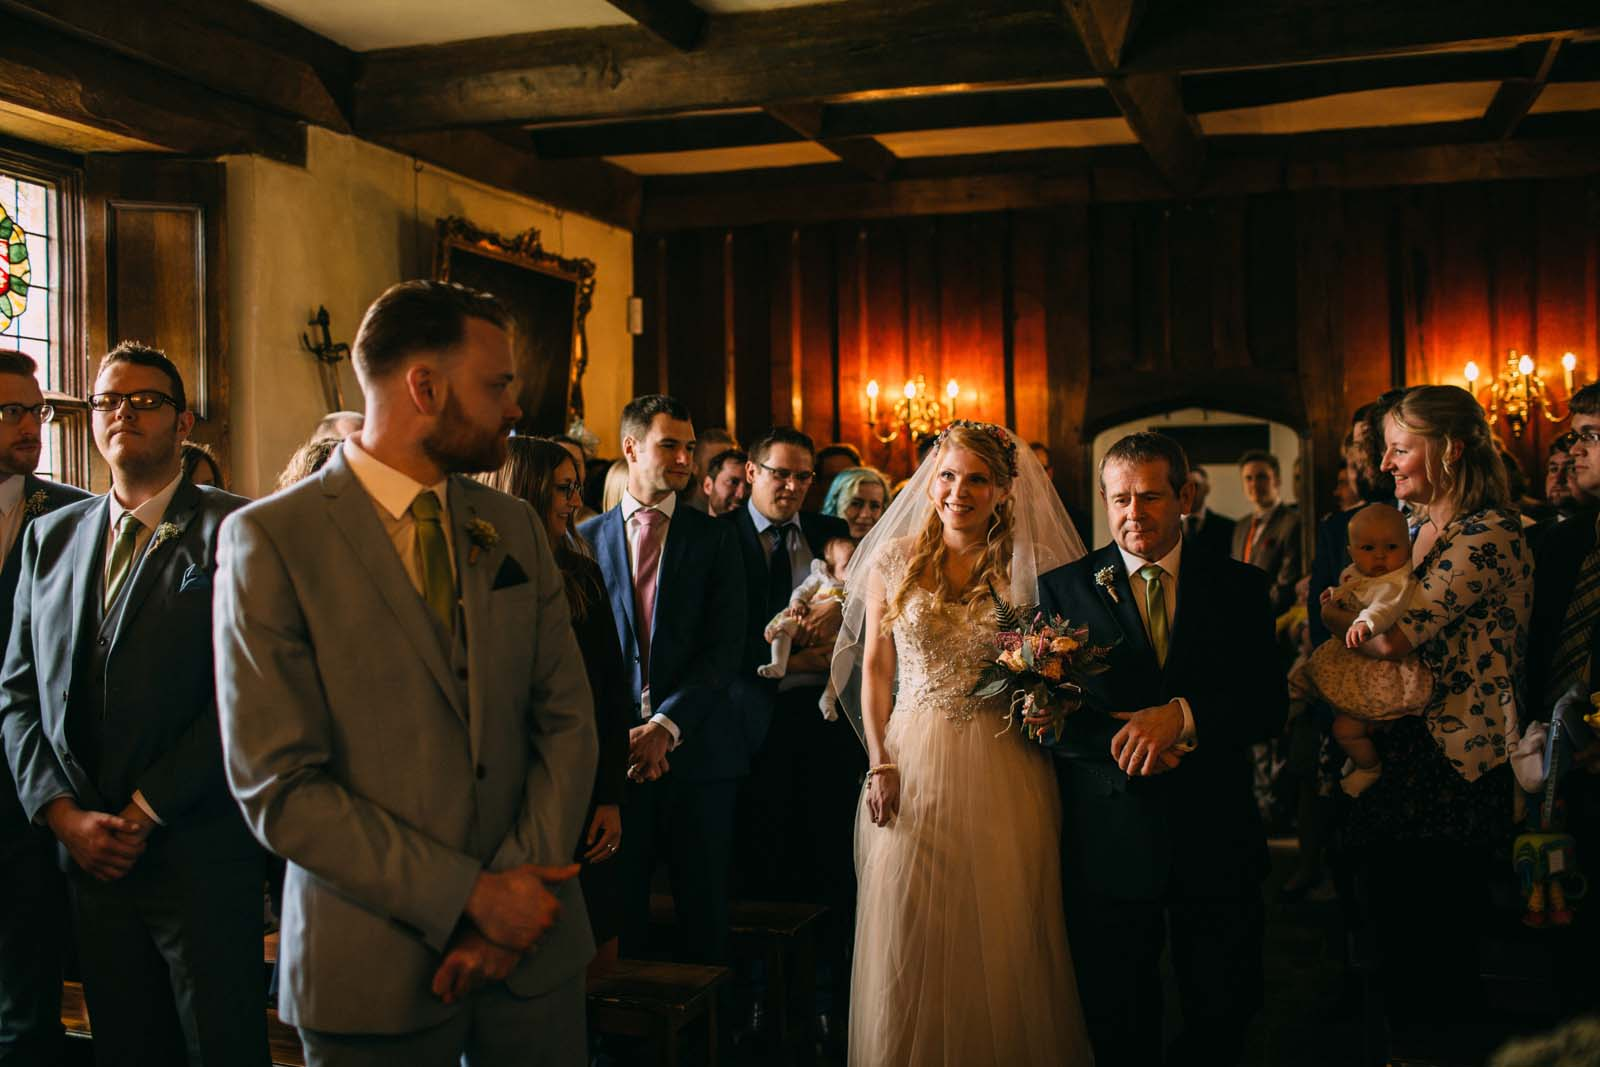 Sulgrave-Manor-Wedding-Victoria-Jon-219